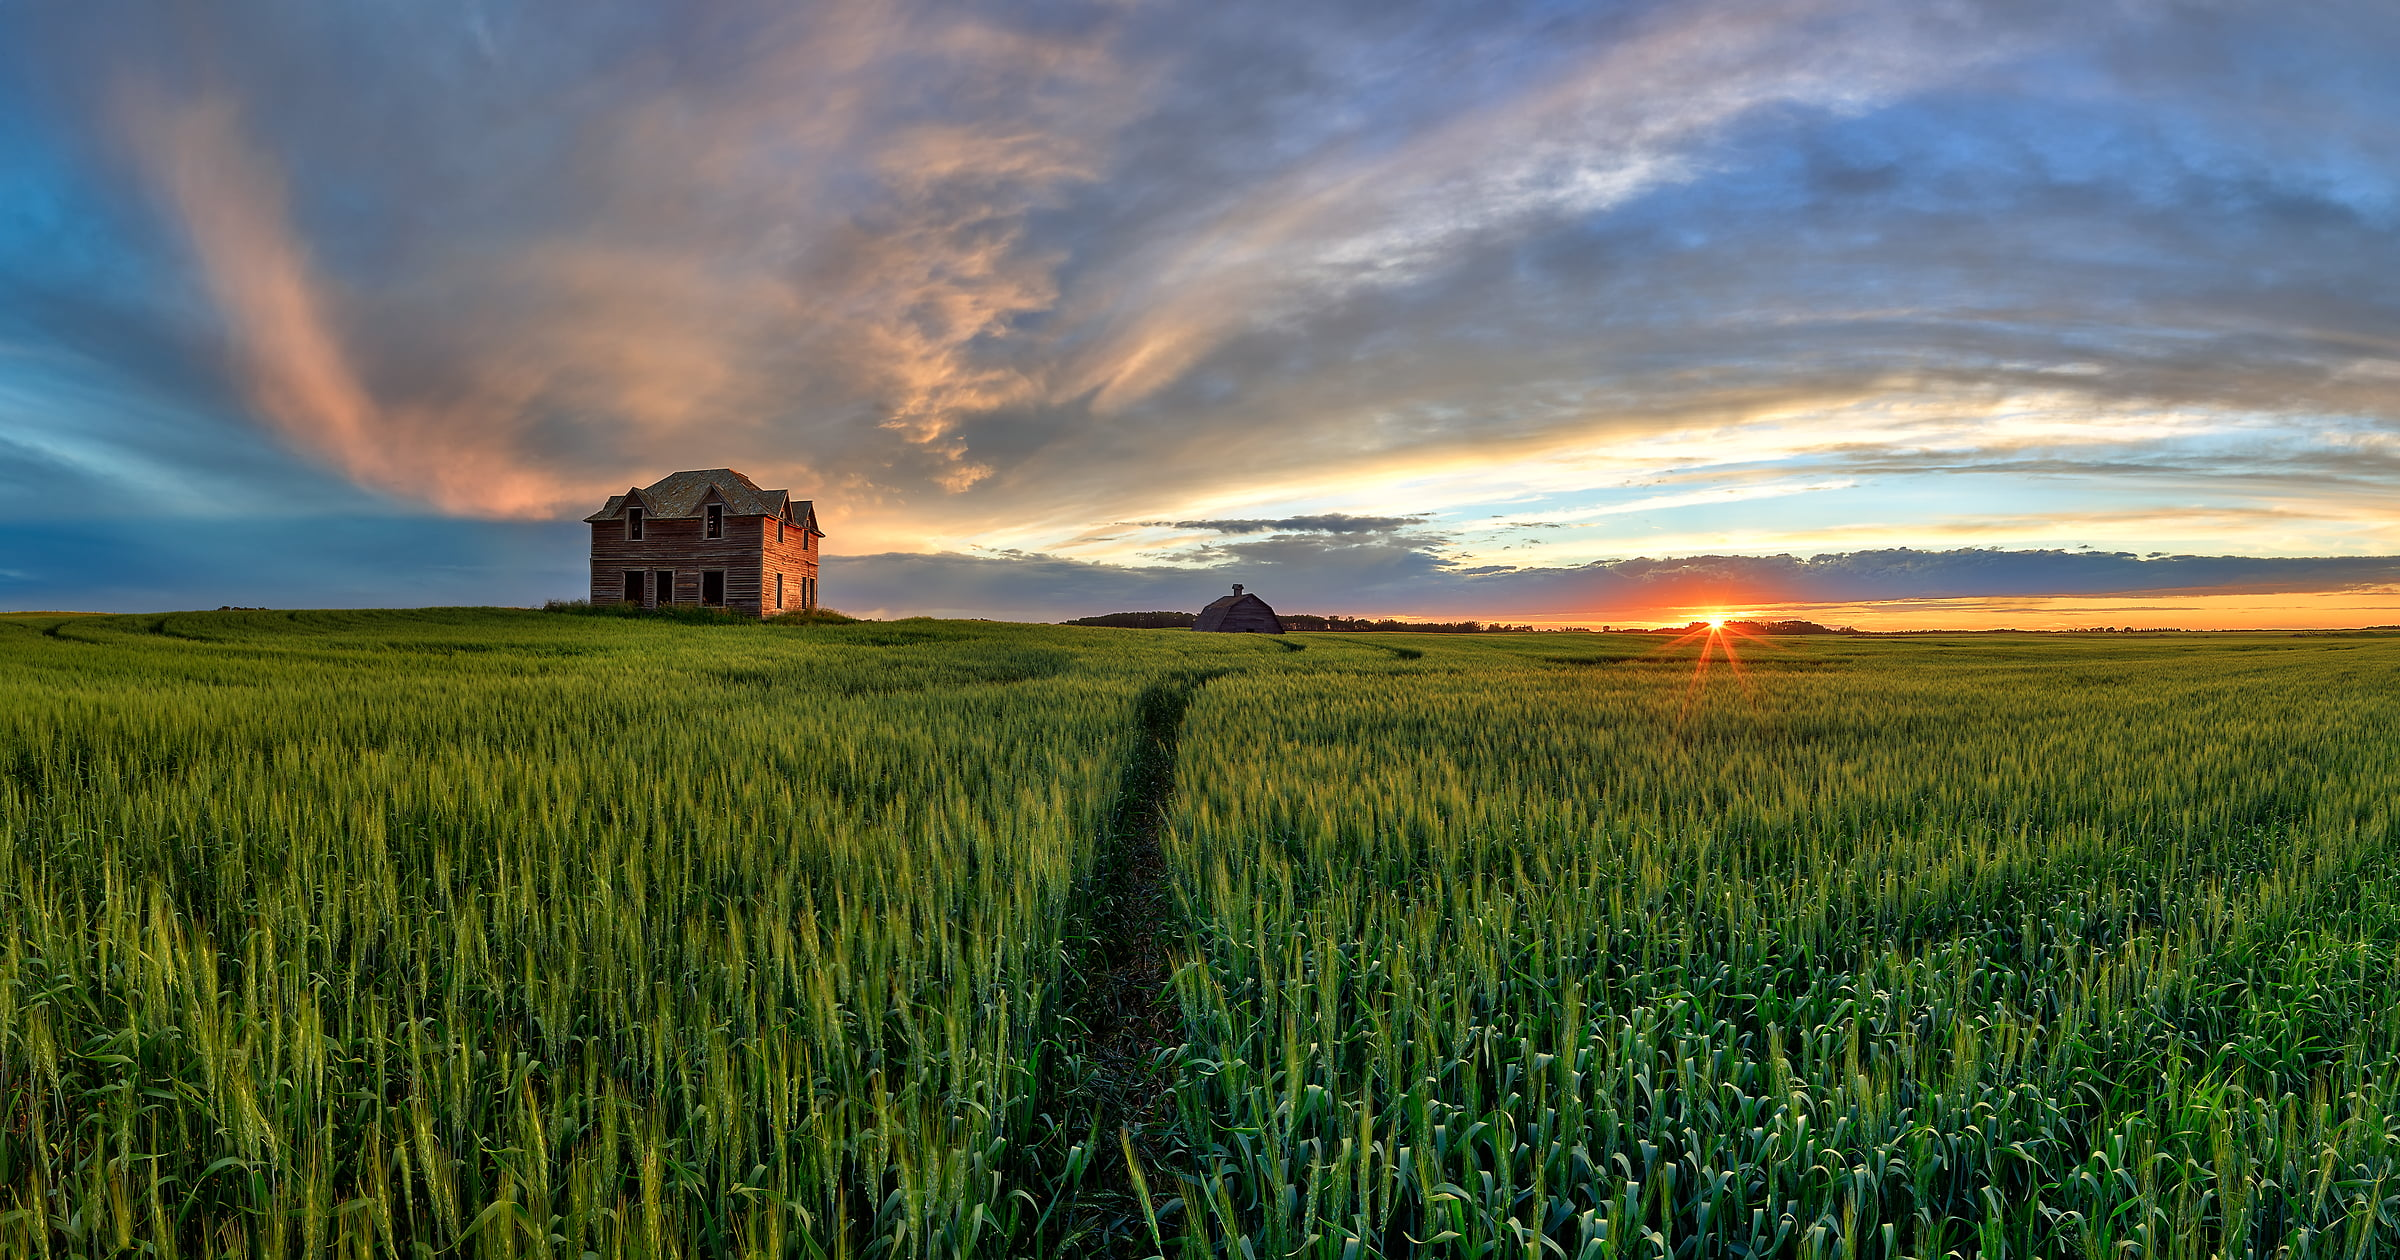 A very high resolution, large-format VAST photo of farmland, grasslands, the prairie, and an old abandoned house; fine art landscape photo created at sunset by Scott Dimond on the Great Plains in Alberta, Canada